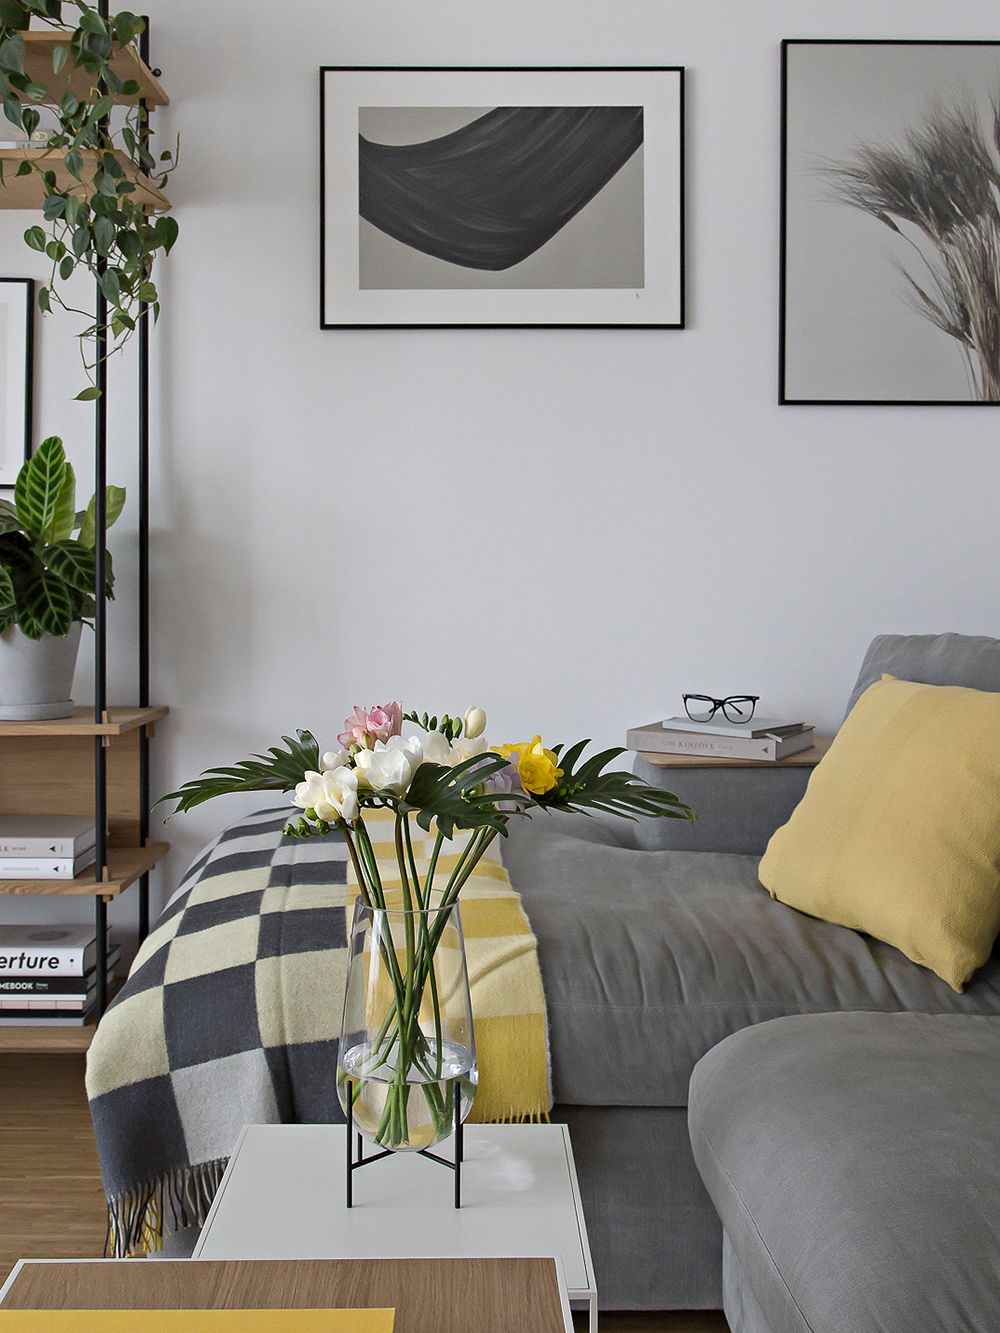 Menu's Échasse vase in a living room setting.